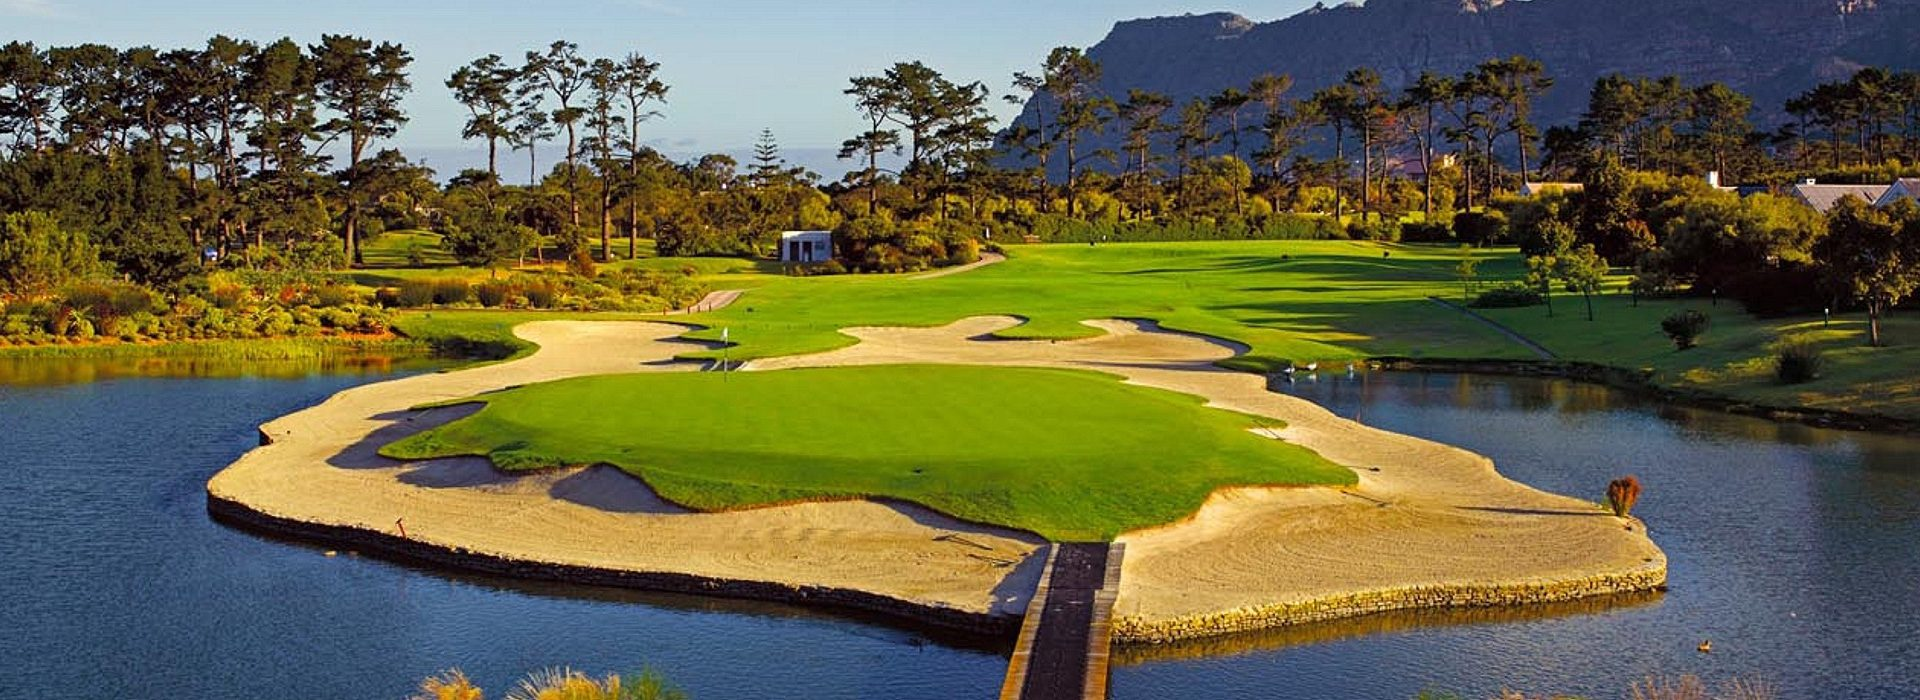 South Africa's Garden Route is Africa's Best Golf Route